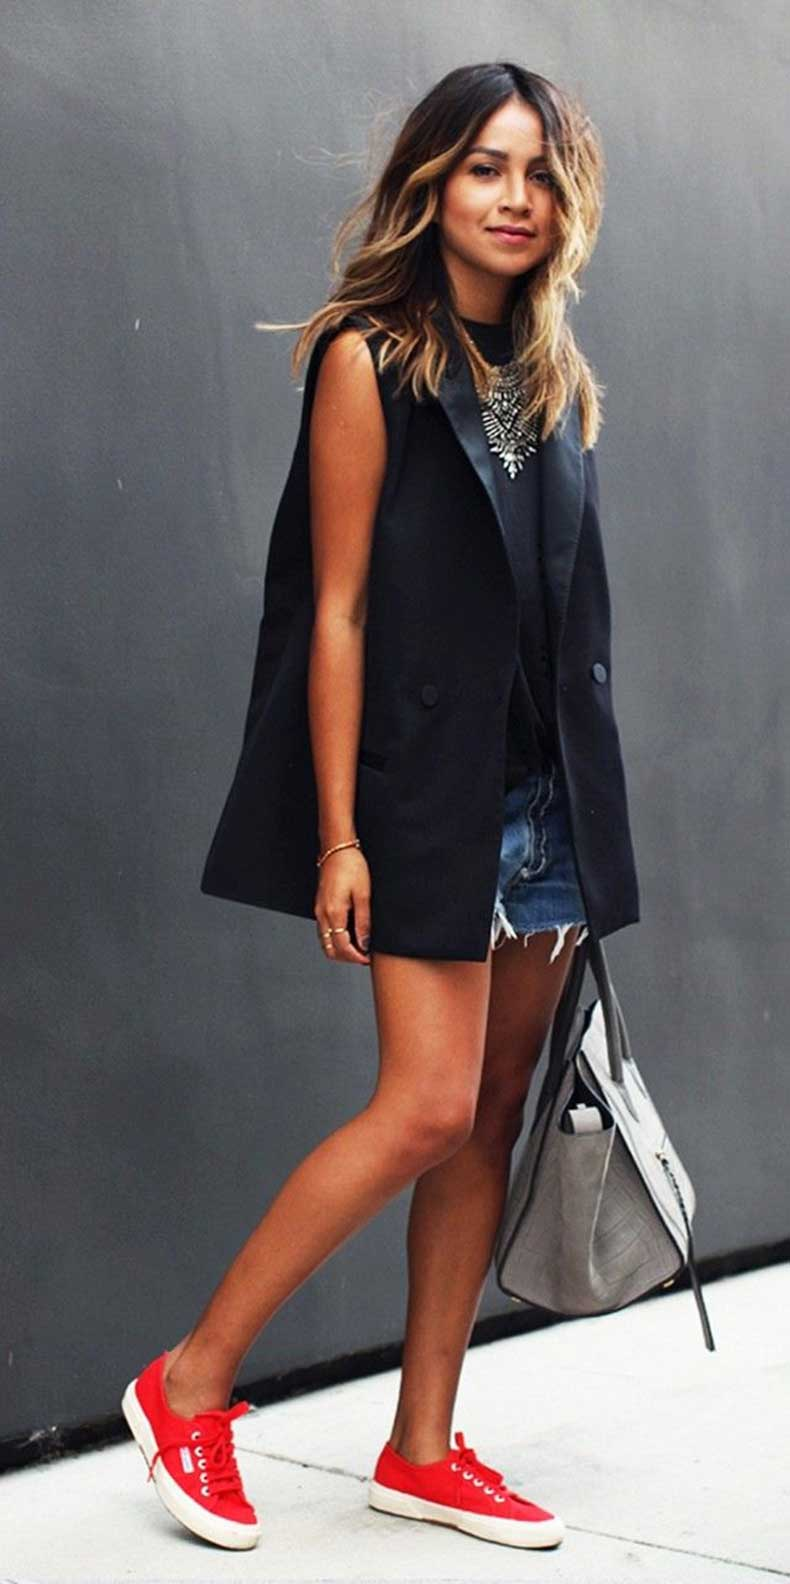 Say-Yes-to-These-Awesome-Street-Style-Looks-This-Summer-22